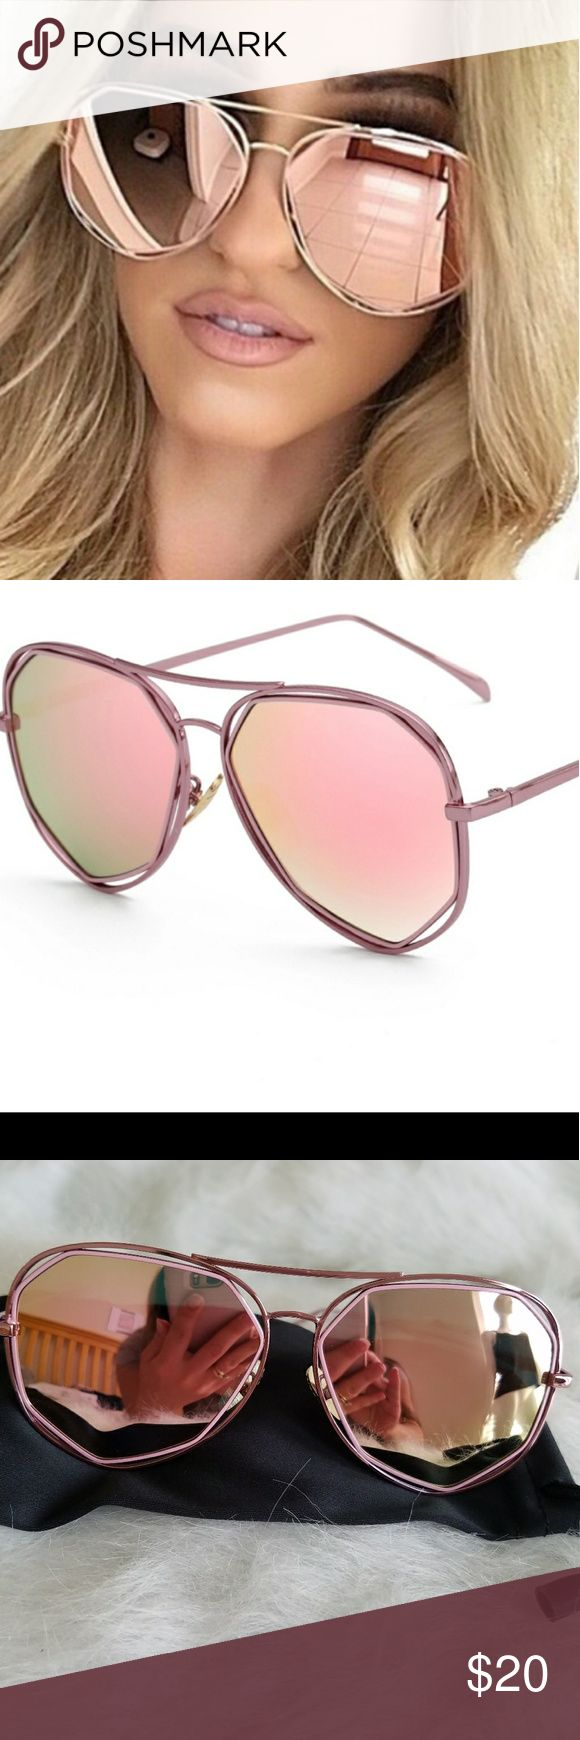 Pink mirrored sunnies Pink mirrored sunnies have Alloy frame. Anti UV, UV400, mirror lenses. Pink frame. Comes with soft carry pouch. (See other listing for same style in black) Accessories Sunglasses